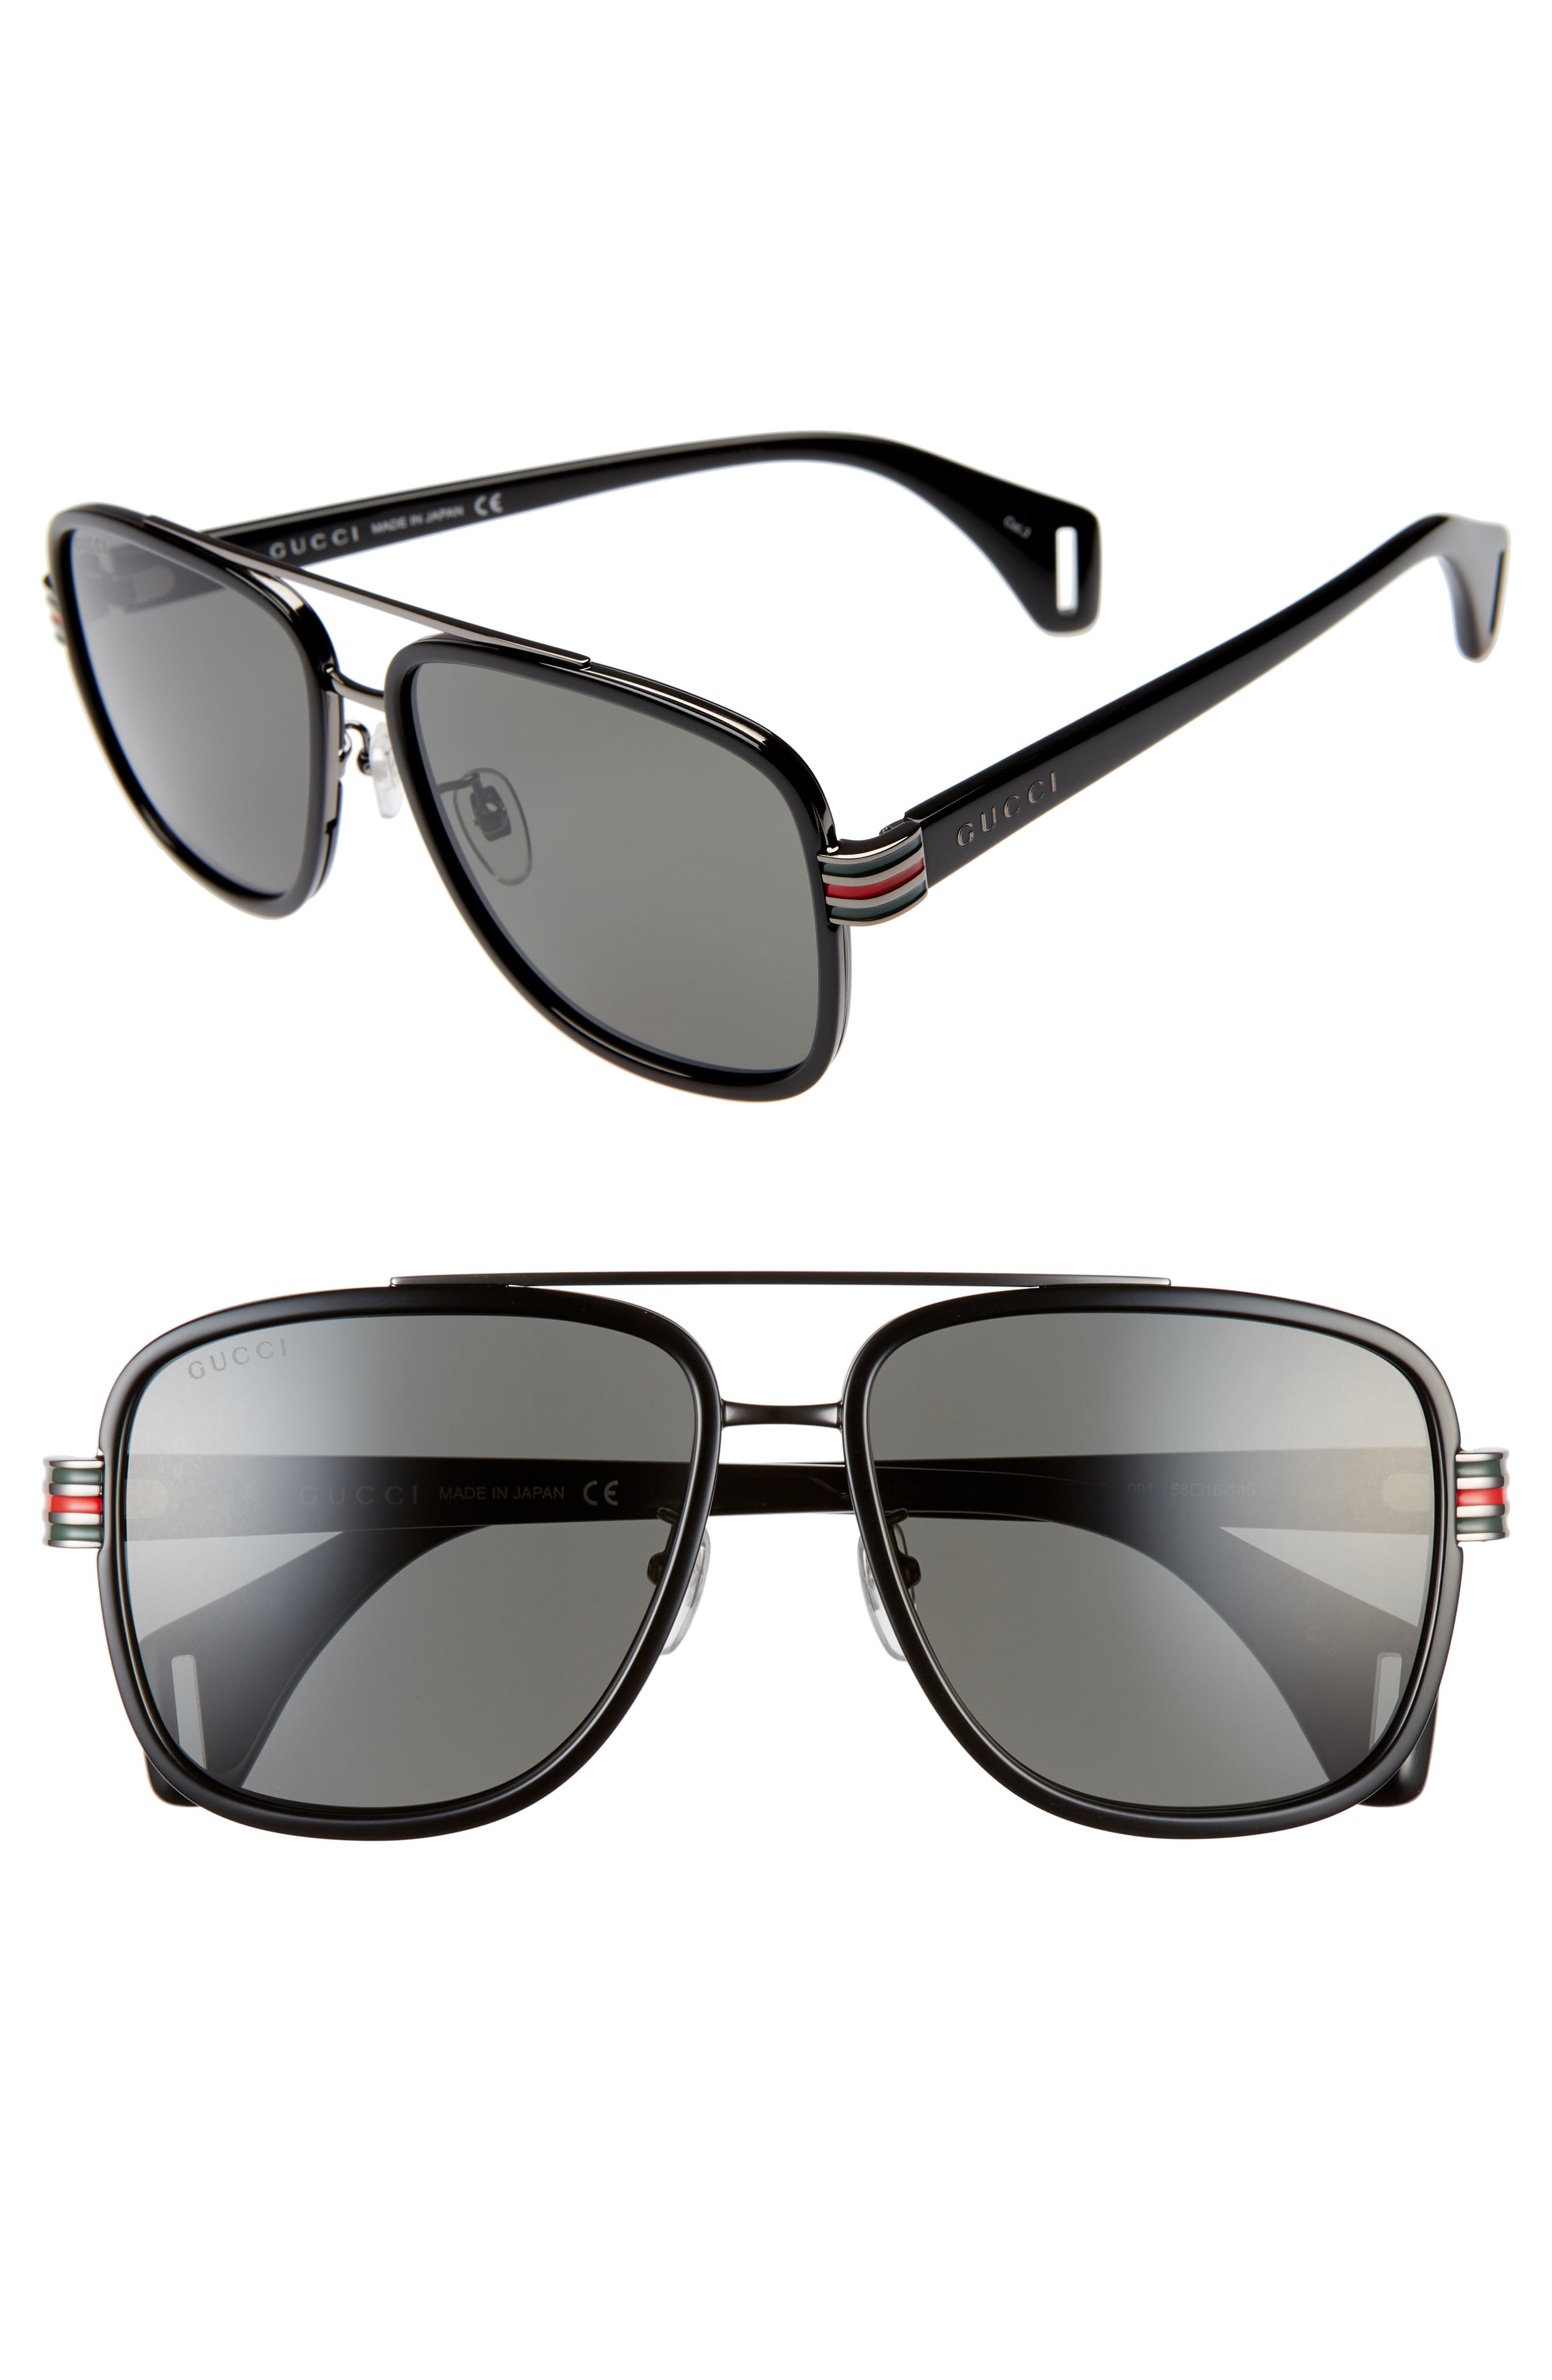 b760817ba6bf Men's Gucci 58Mm Aviator Sunglasses – Black/ Grey | The Fashionisto